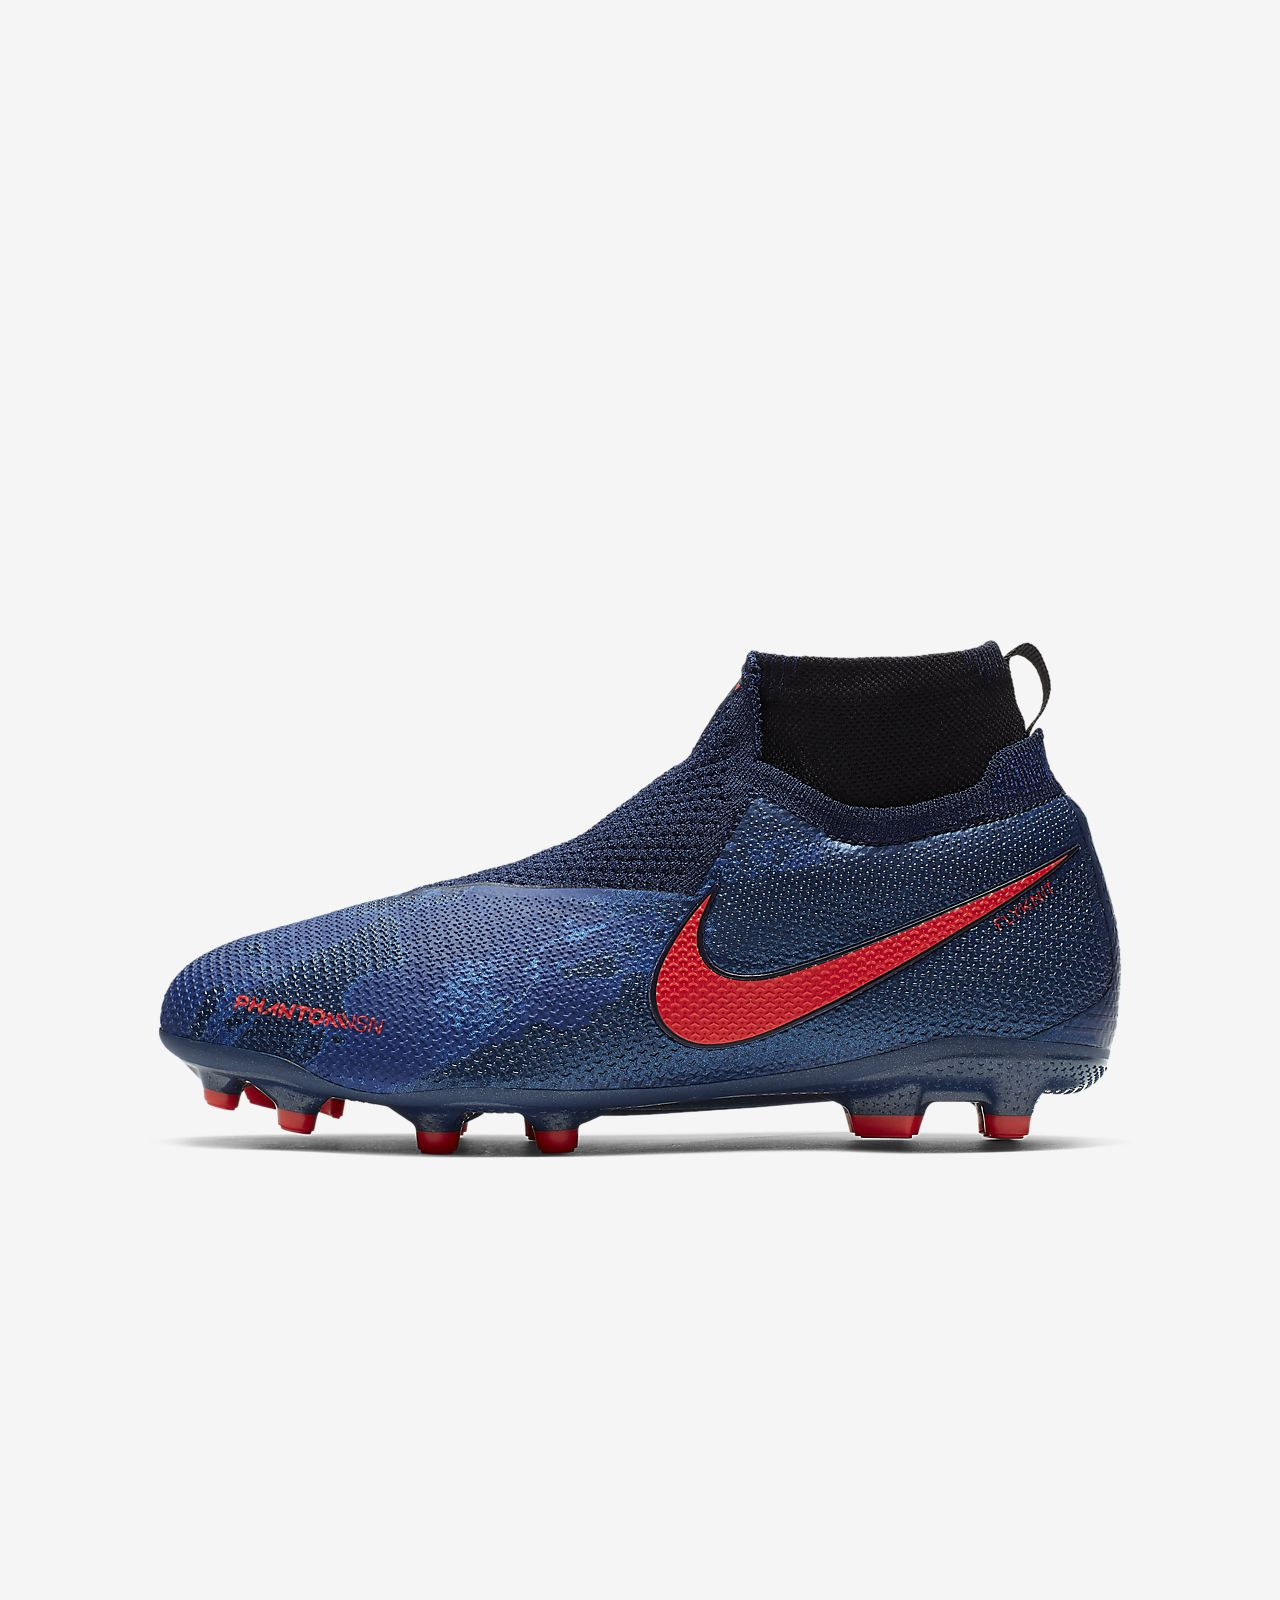 Nike Jr. PhantomVSN Elite Dynamic Fit MG Botas de fútbol para múltiples  superficies - Niño b14bdd0bc6a1d